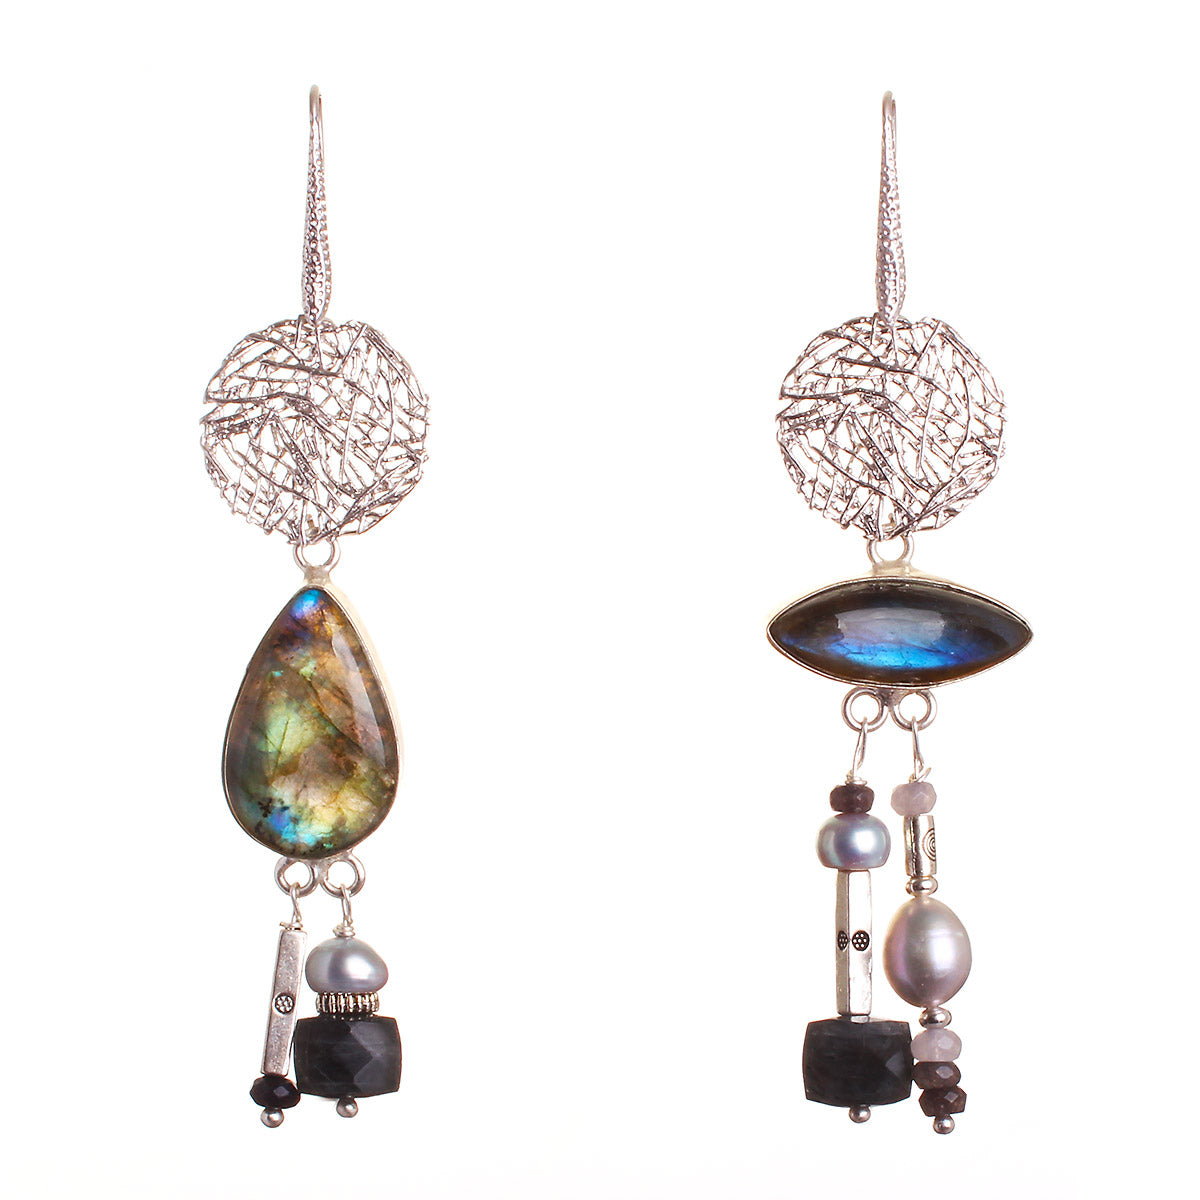 N°482 The Smooth Republic of Labradorite Statement Earrings